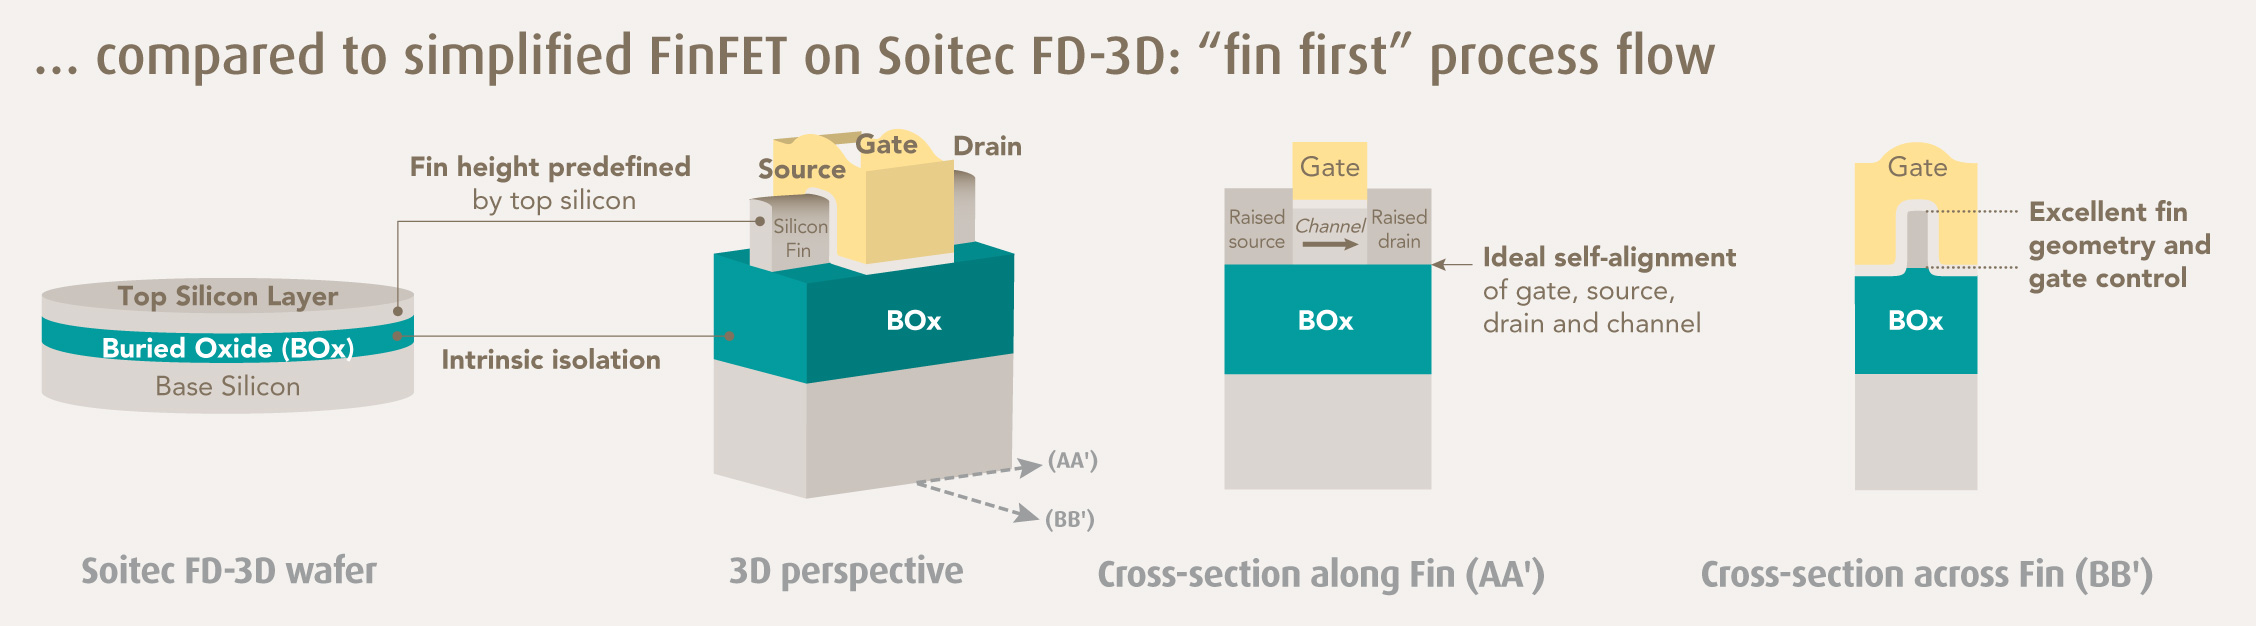 Simplified FinFET on Soitec FD-3D